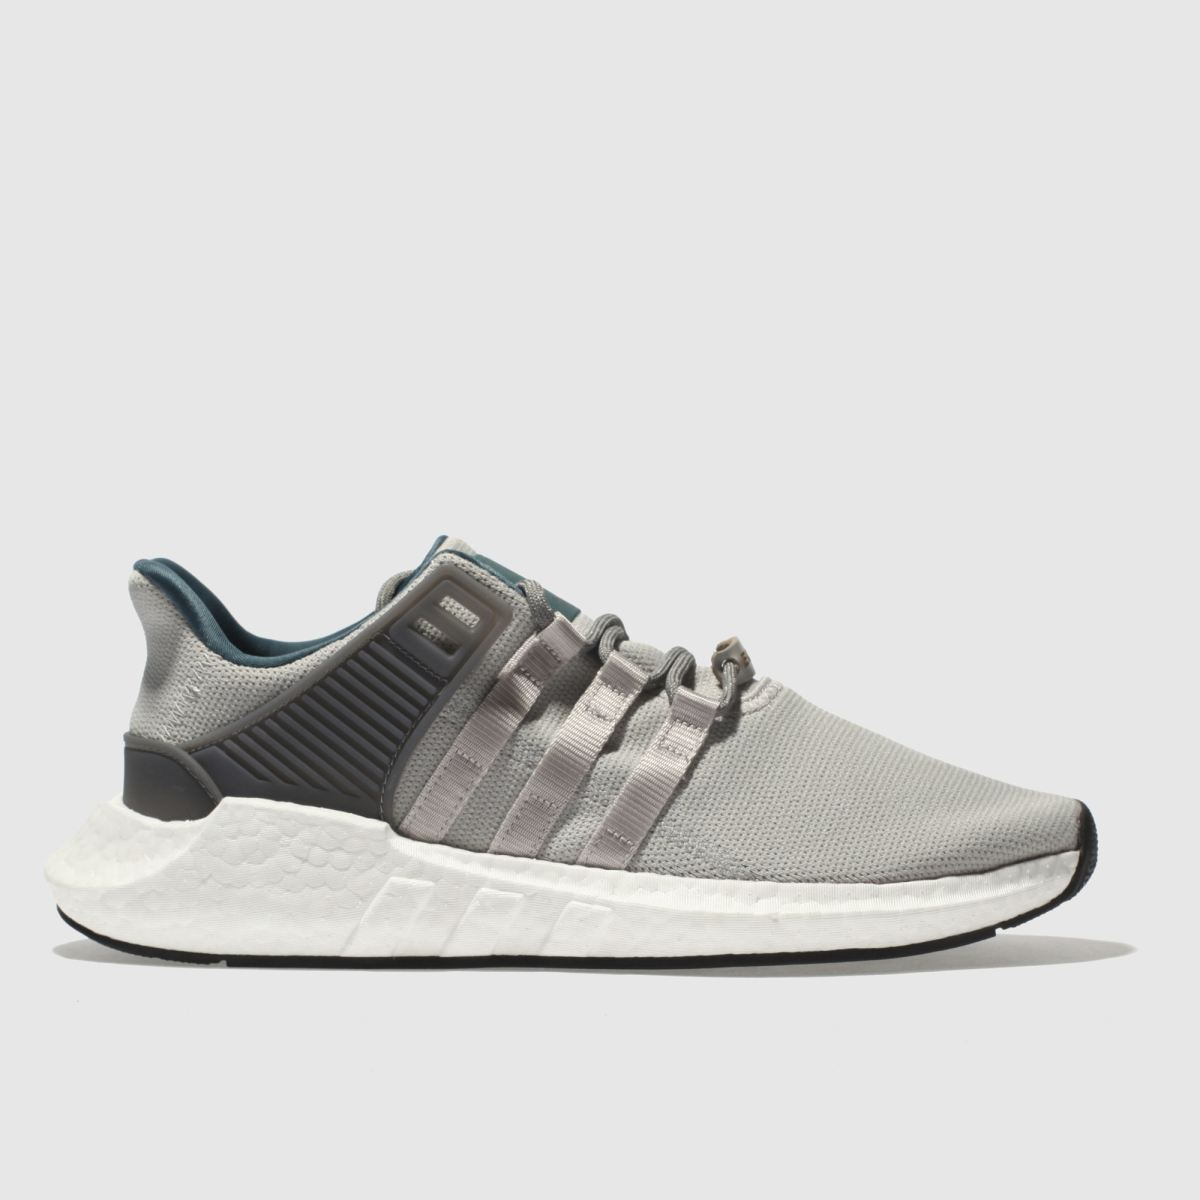 Adidas Light Grey Eqt Support 93/17 Trainers